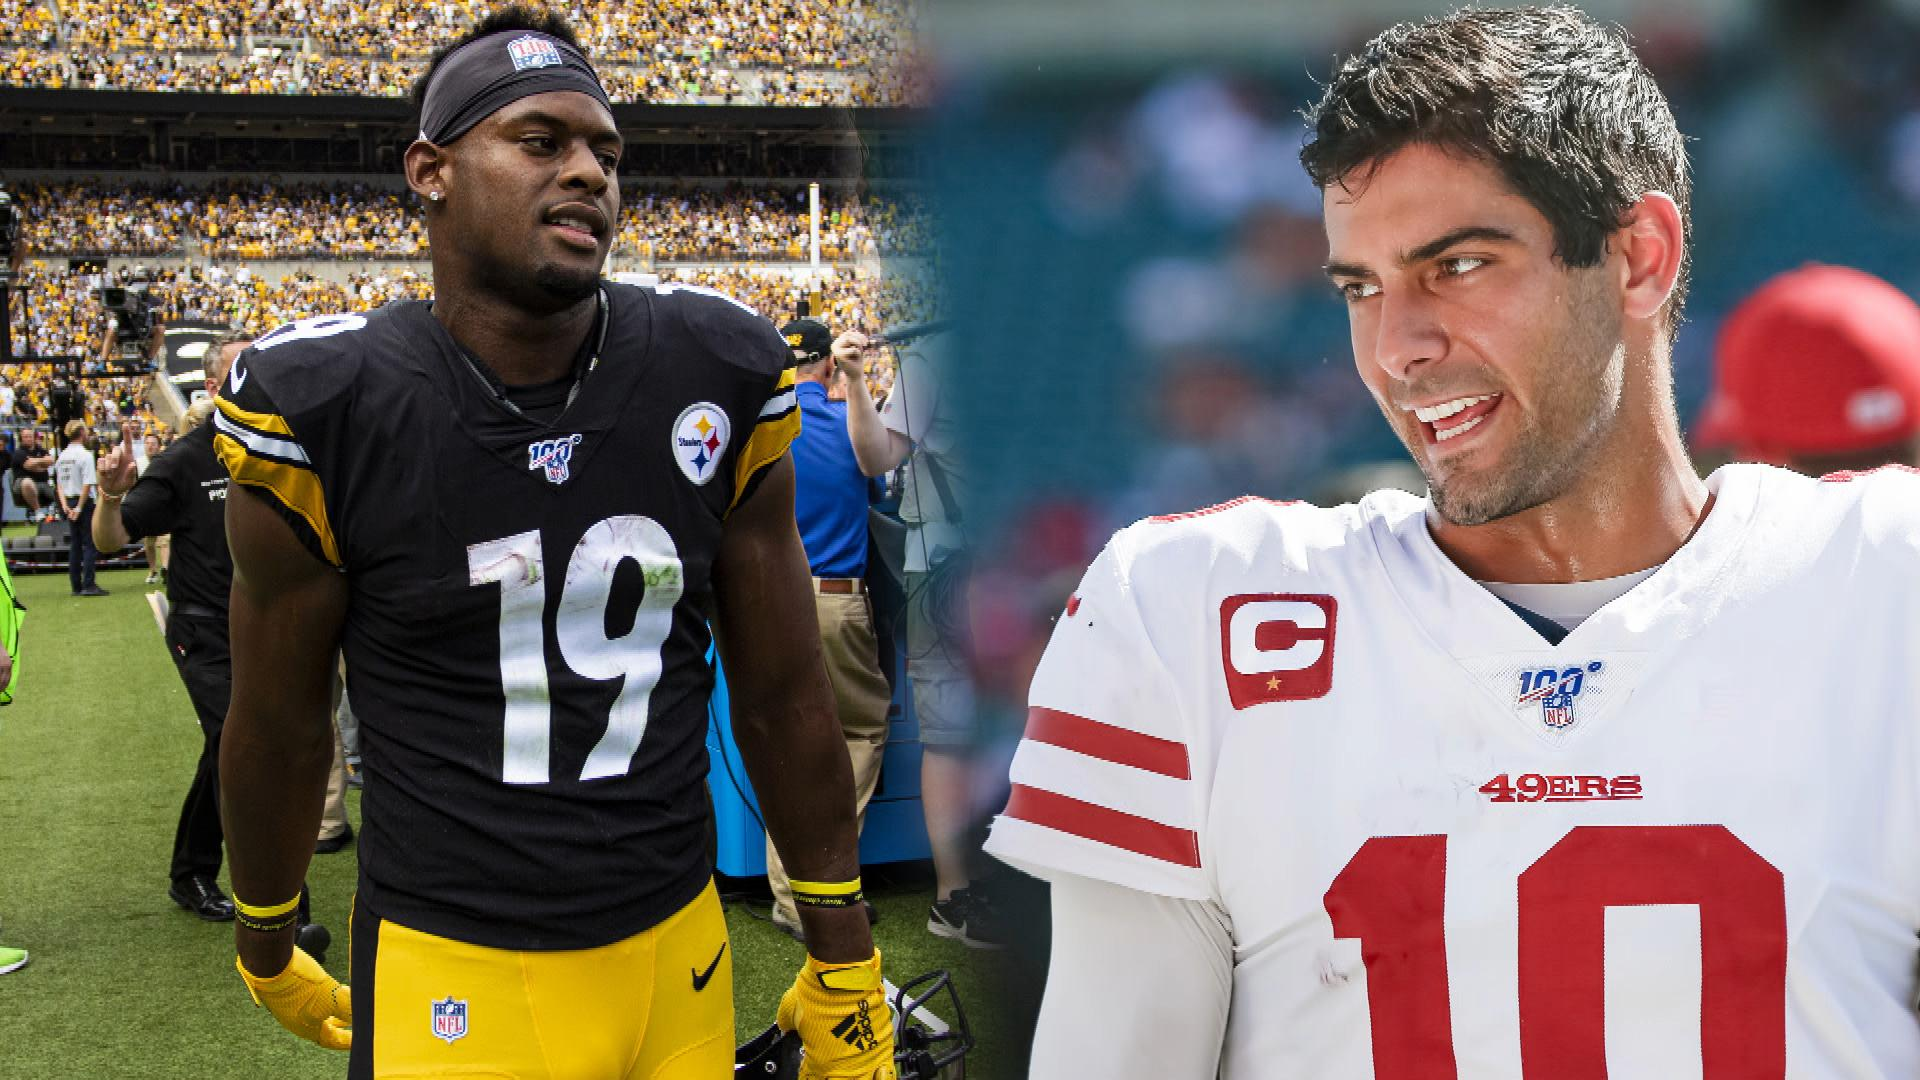 49ers run-heavy offense will be the storyline vs. Steelers young QB